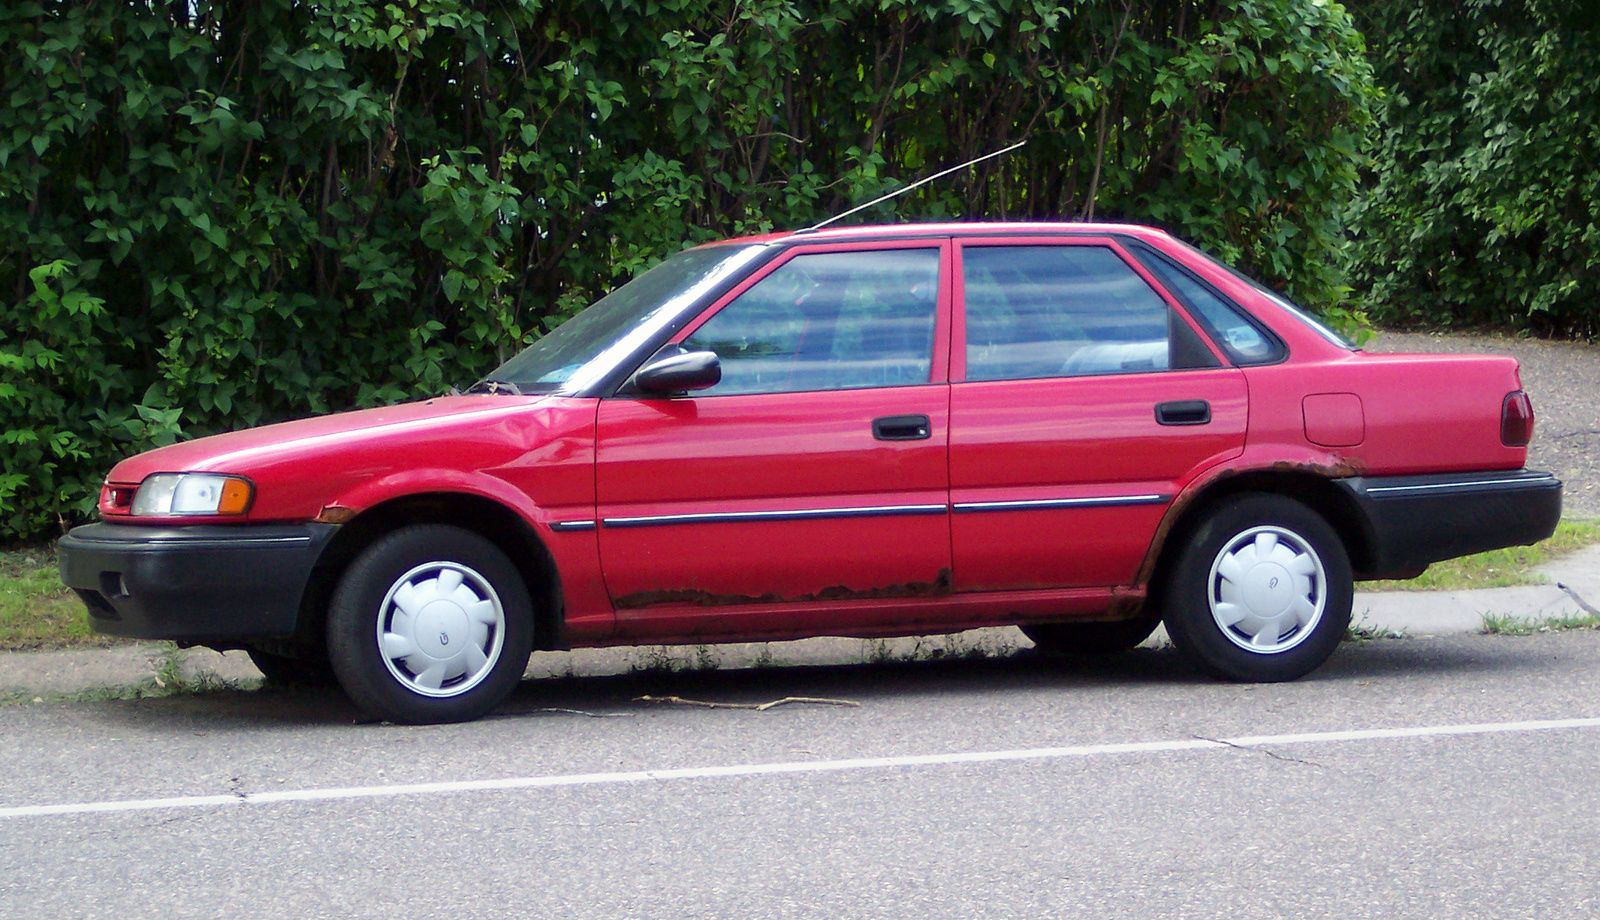 small resolution of 1992 geo prizm car 4 hated this car